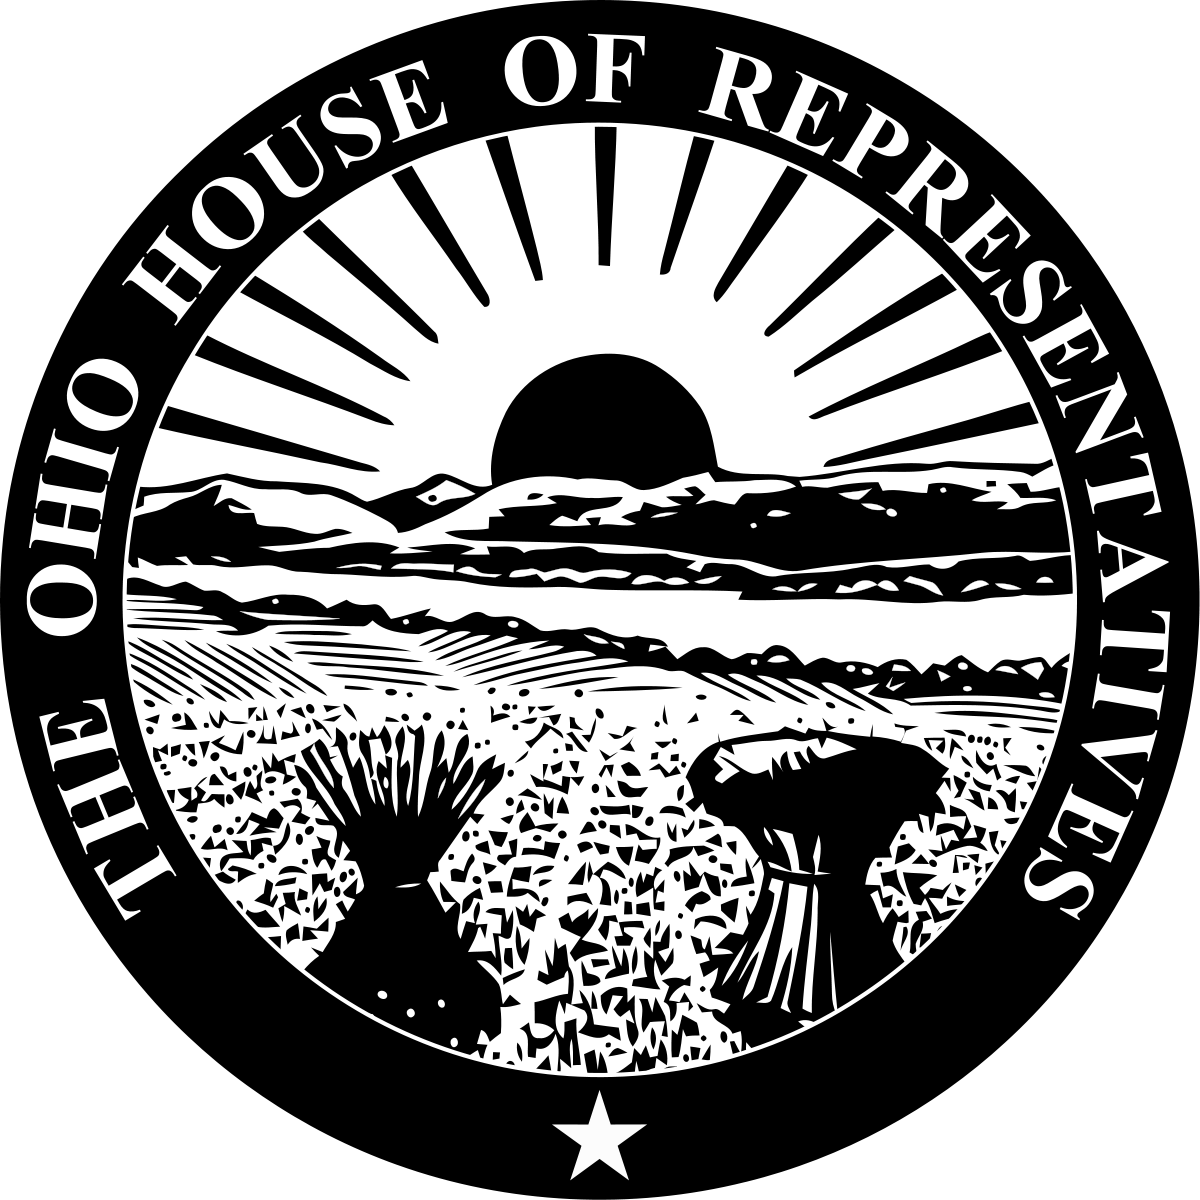 House of representatives clipart clipart transparent download House Of Representatives Building Drawing at GetDrawings.com | Free ... clipart transparent download